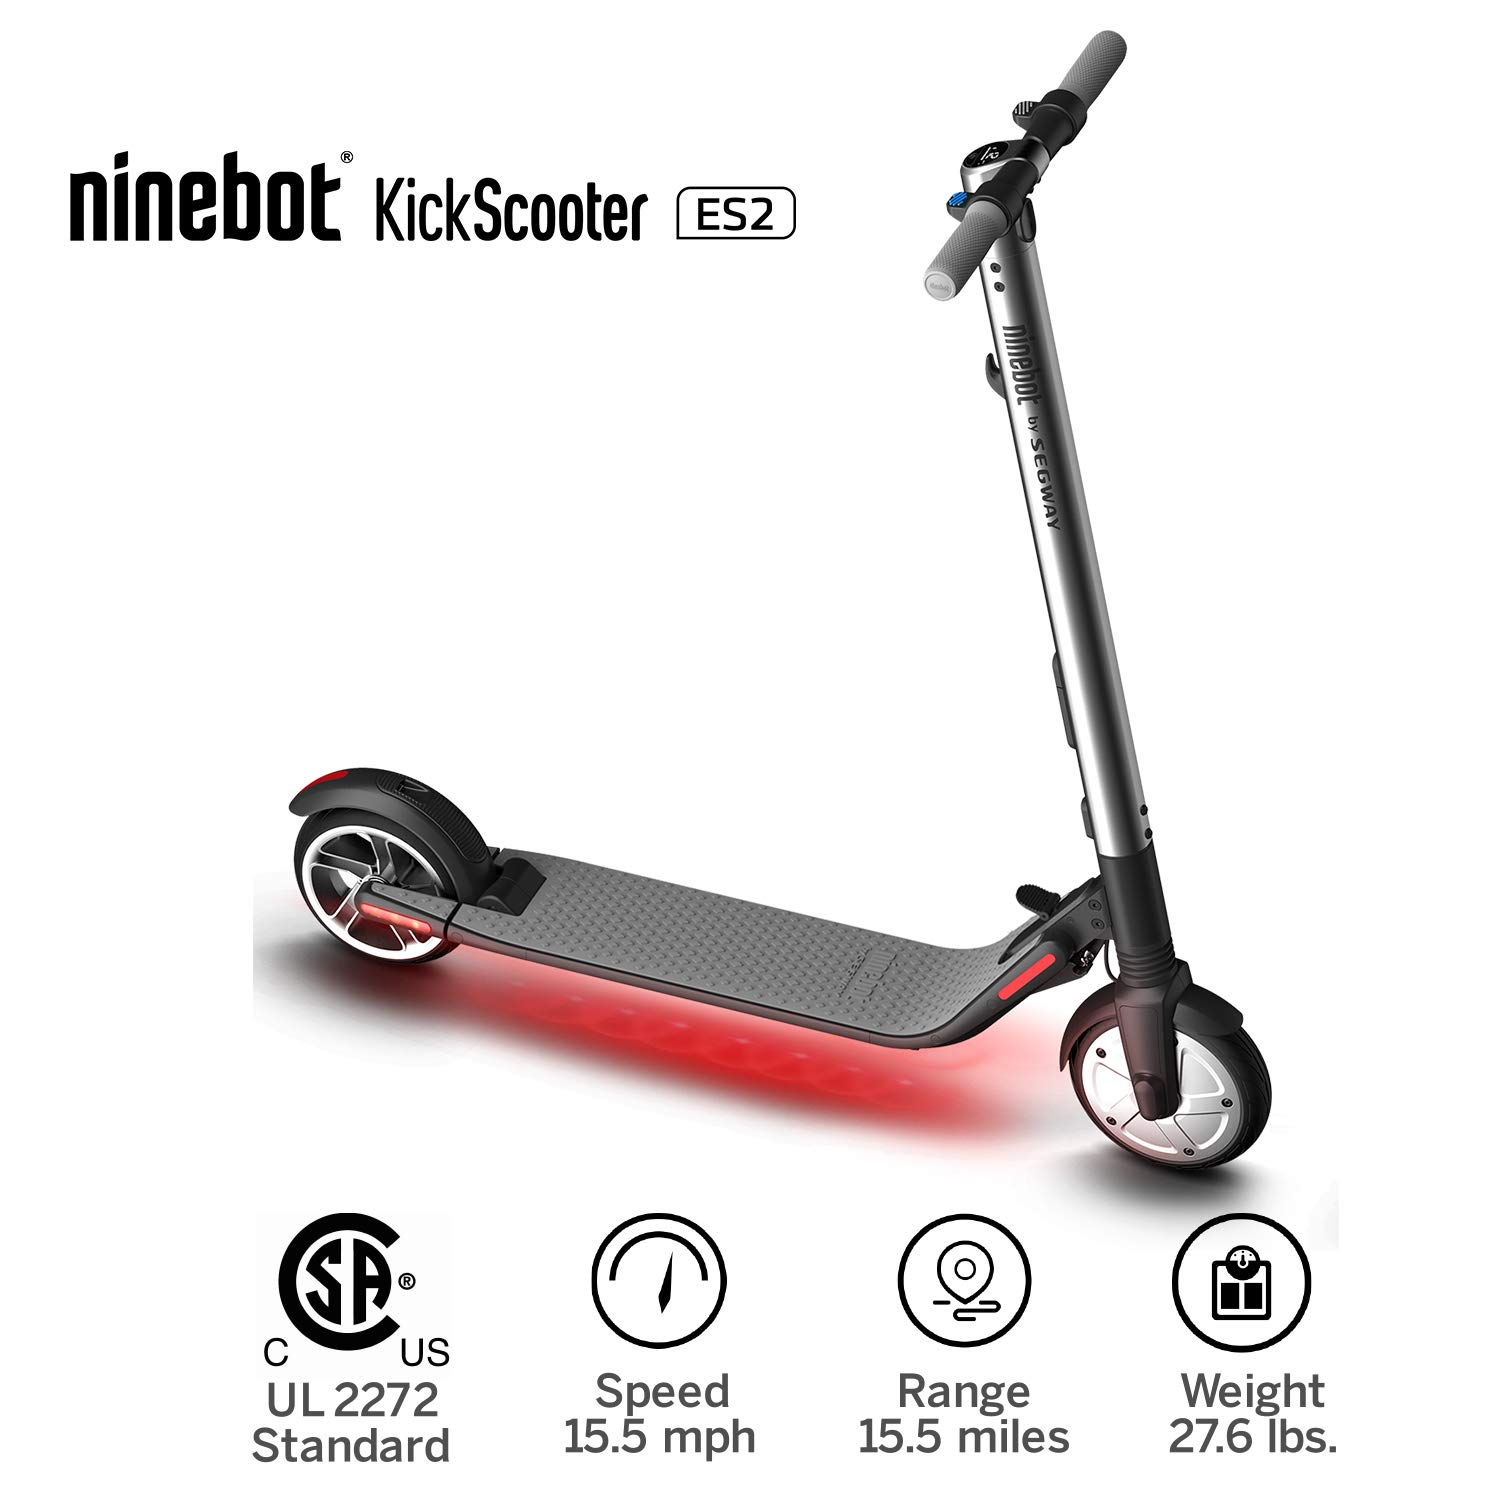 Segway Ninebot KickScooter ES2 Pro Electric Kick Scooter for Adults n Kids-  Mobility Folding e Scooter Upgraded Motor Power - Silver